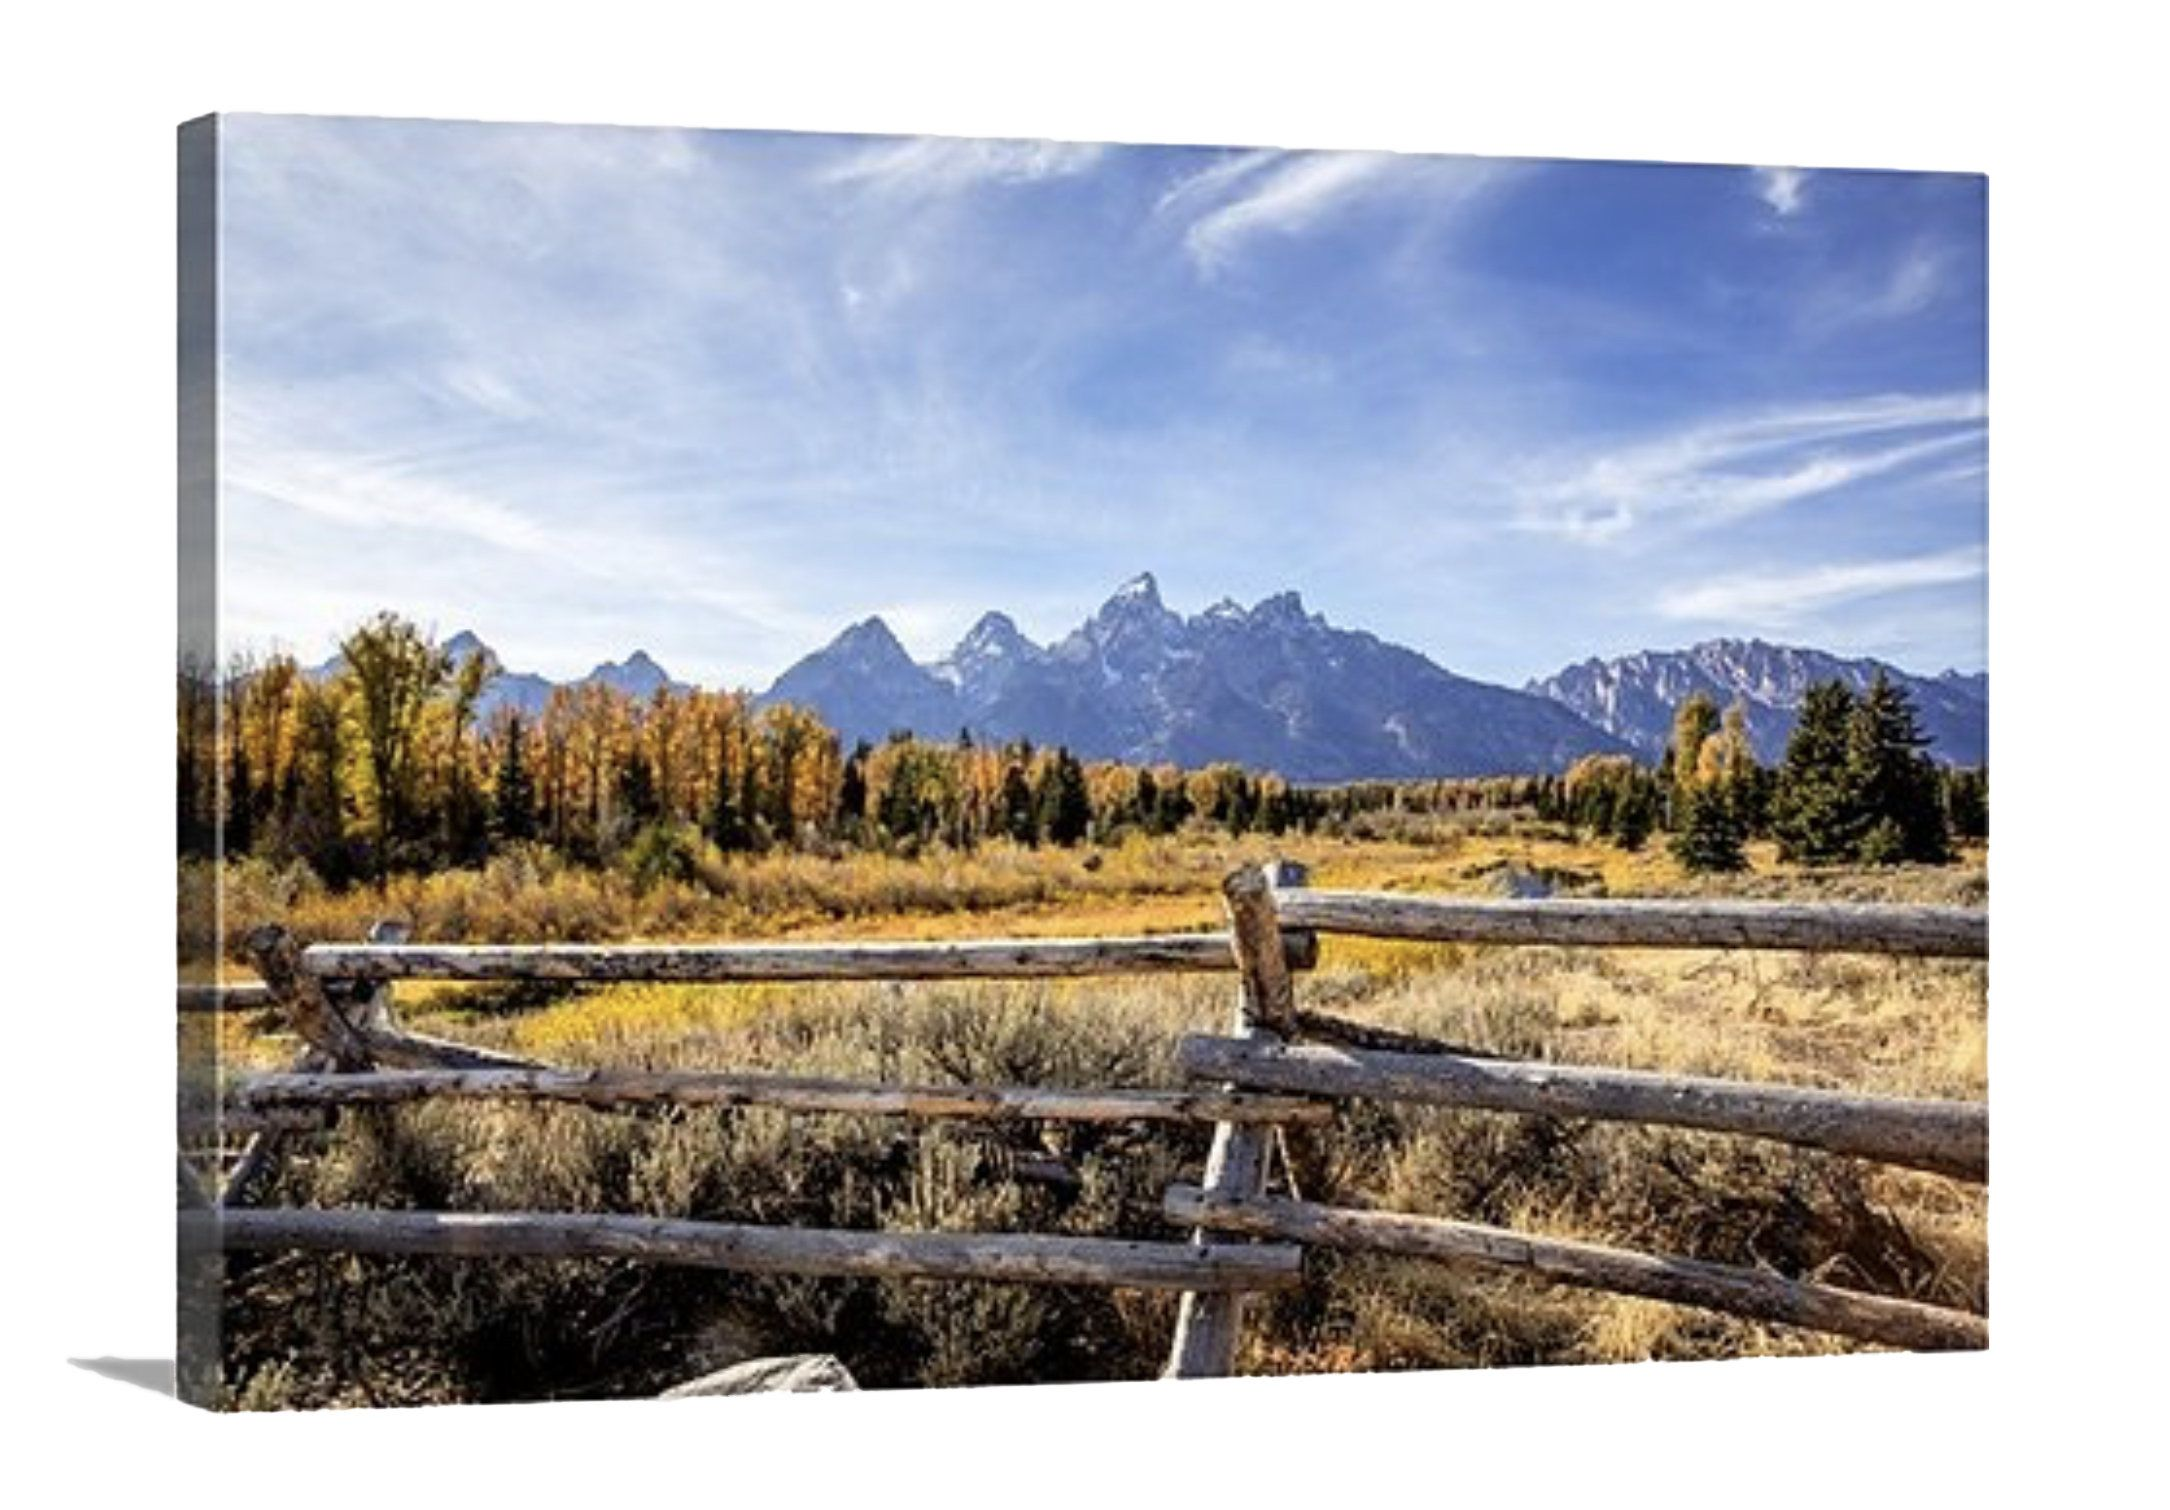 Above Couch Wall Decor Over The Bed Wall Decor Grand Teton Etsy Mountain Photography Grand Tetons Country Life Photography